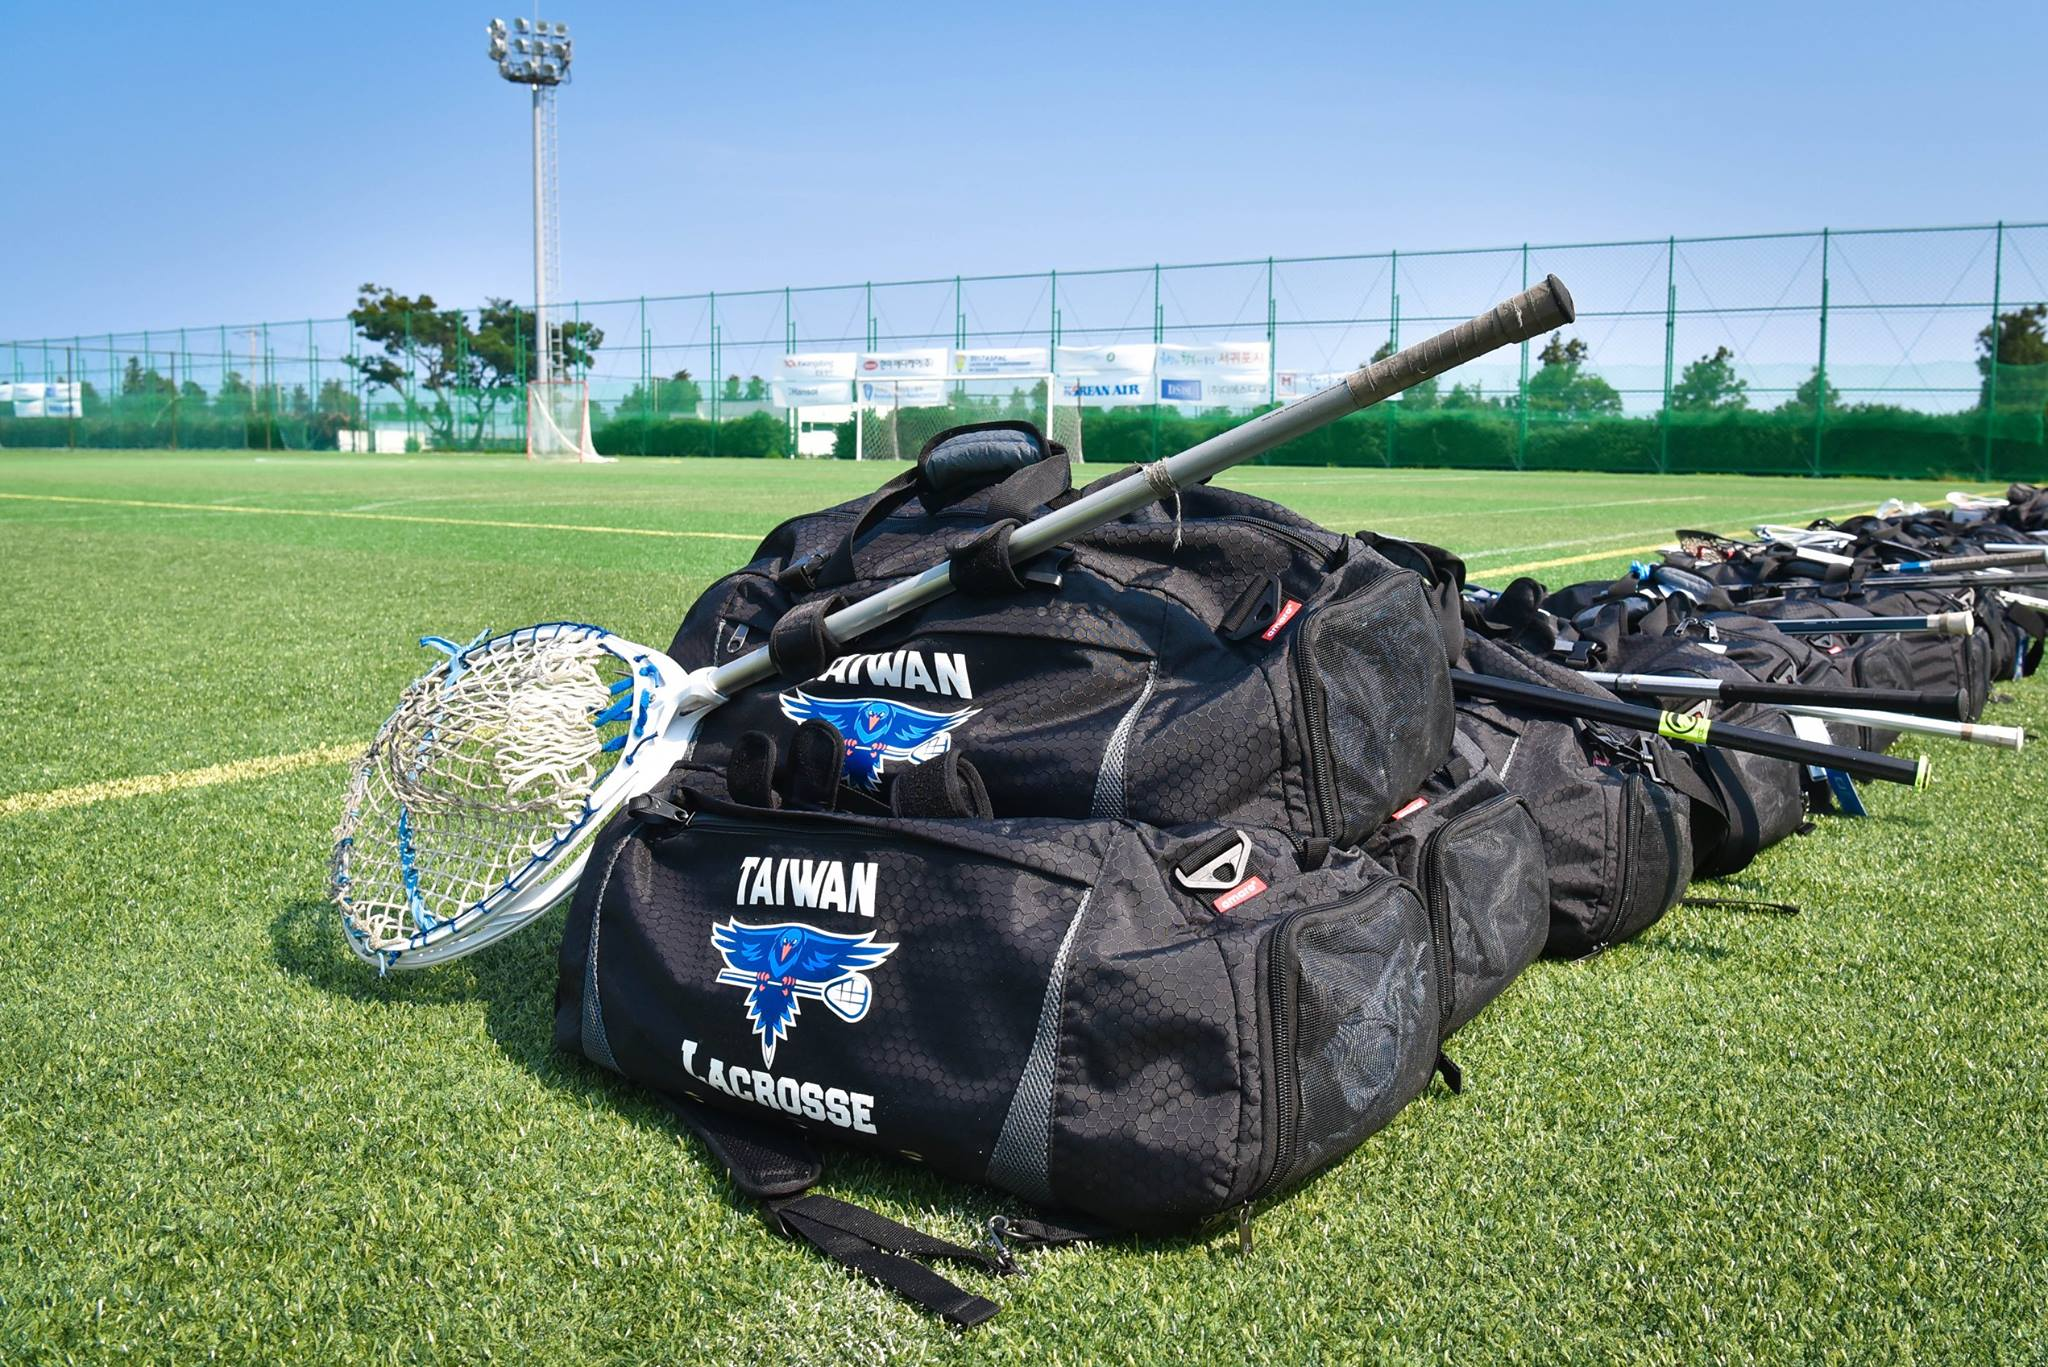 Get your Lacrosse Gears in check!